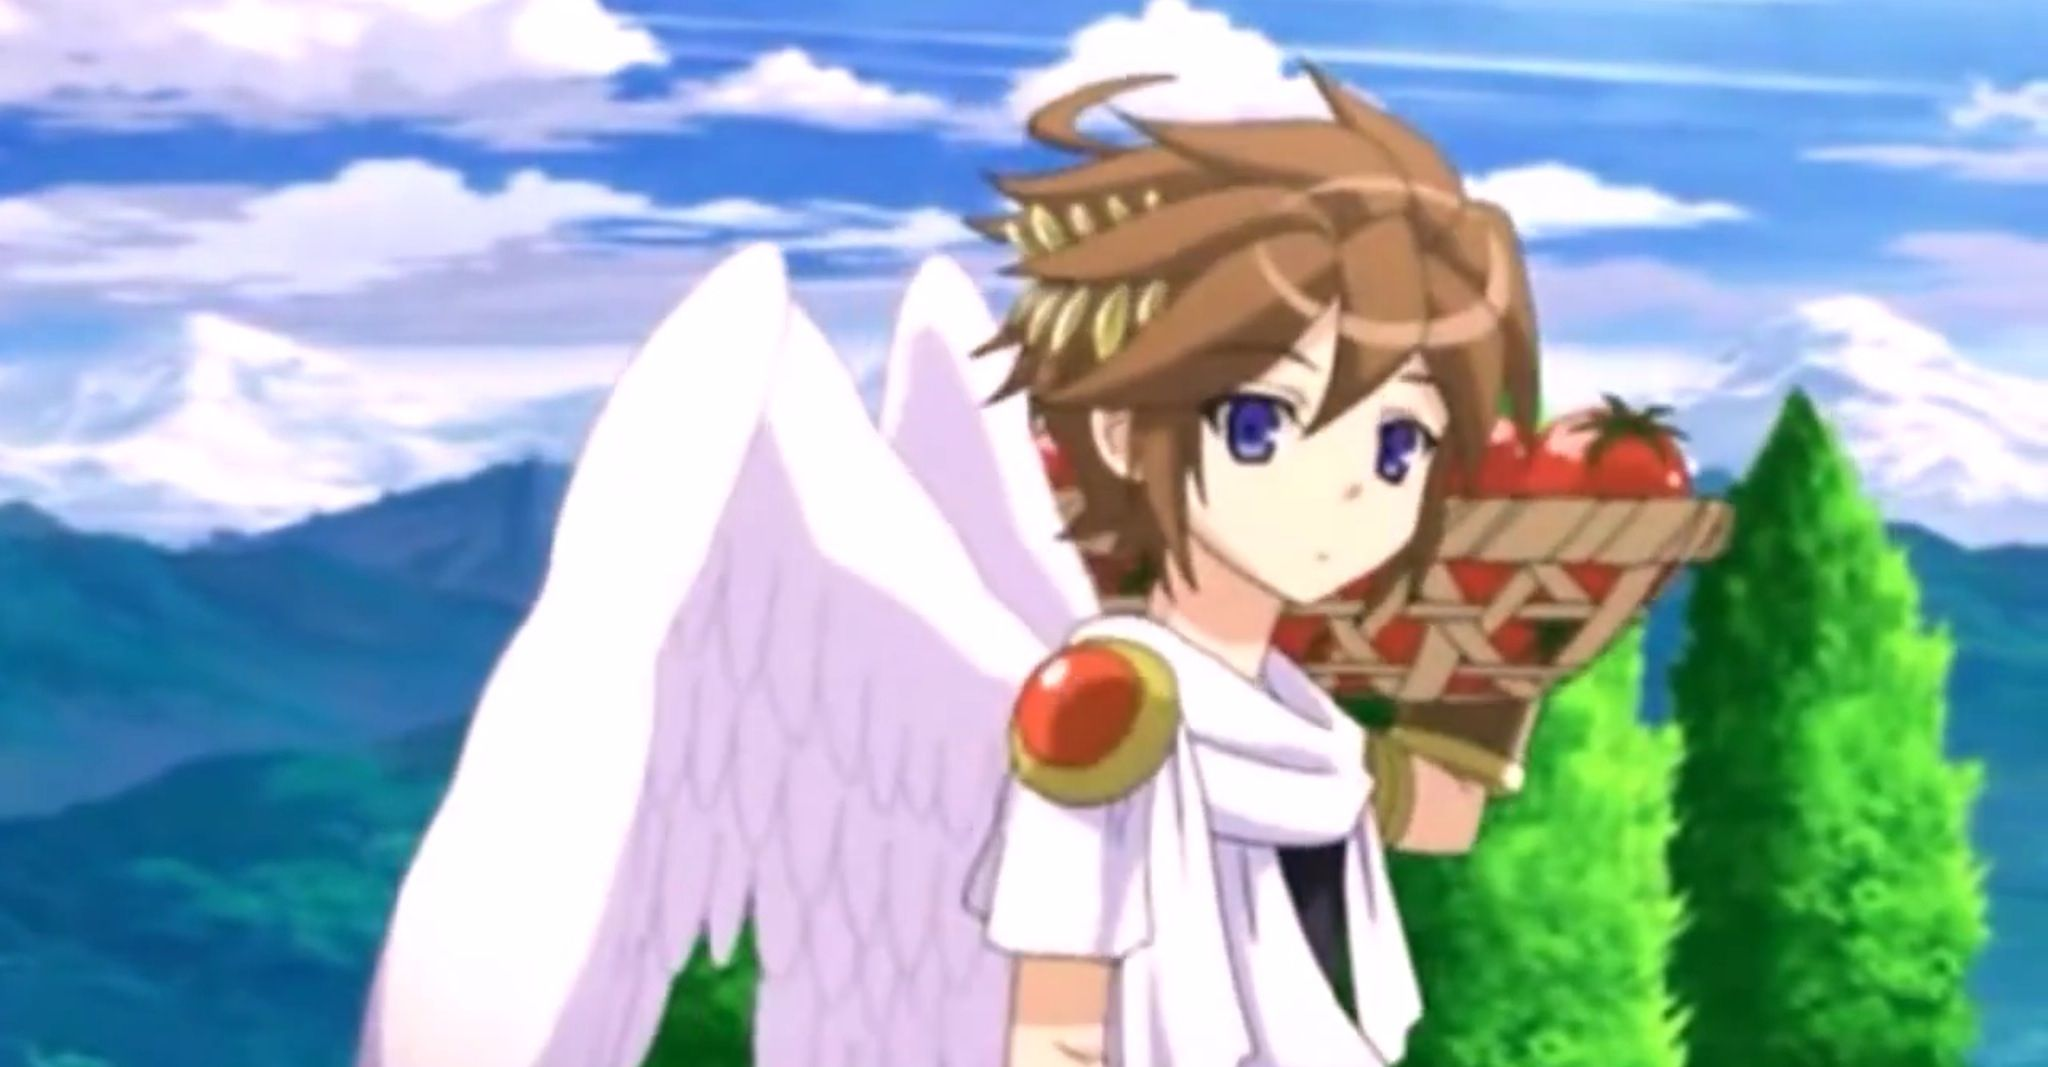 Kid icarus uprising anime shorts i find pit so cute x3